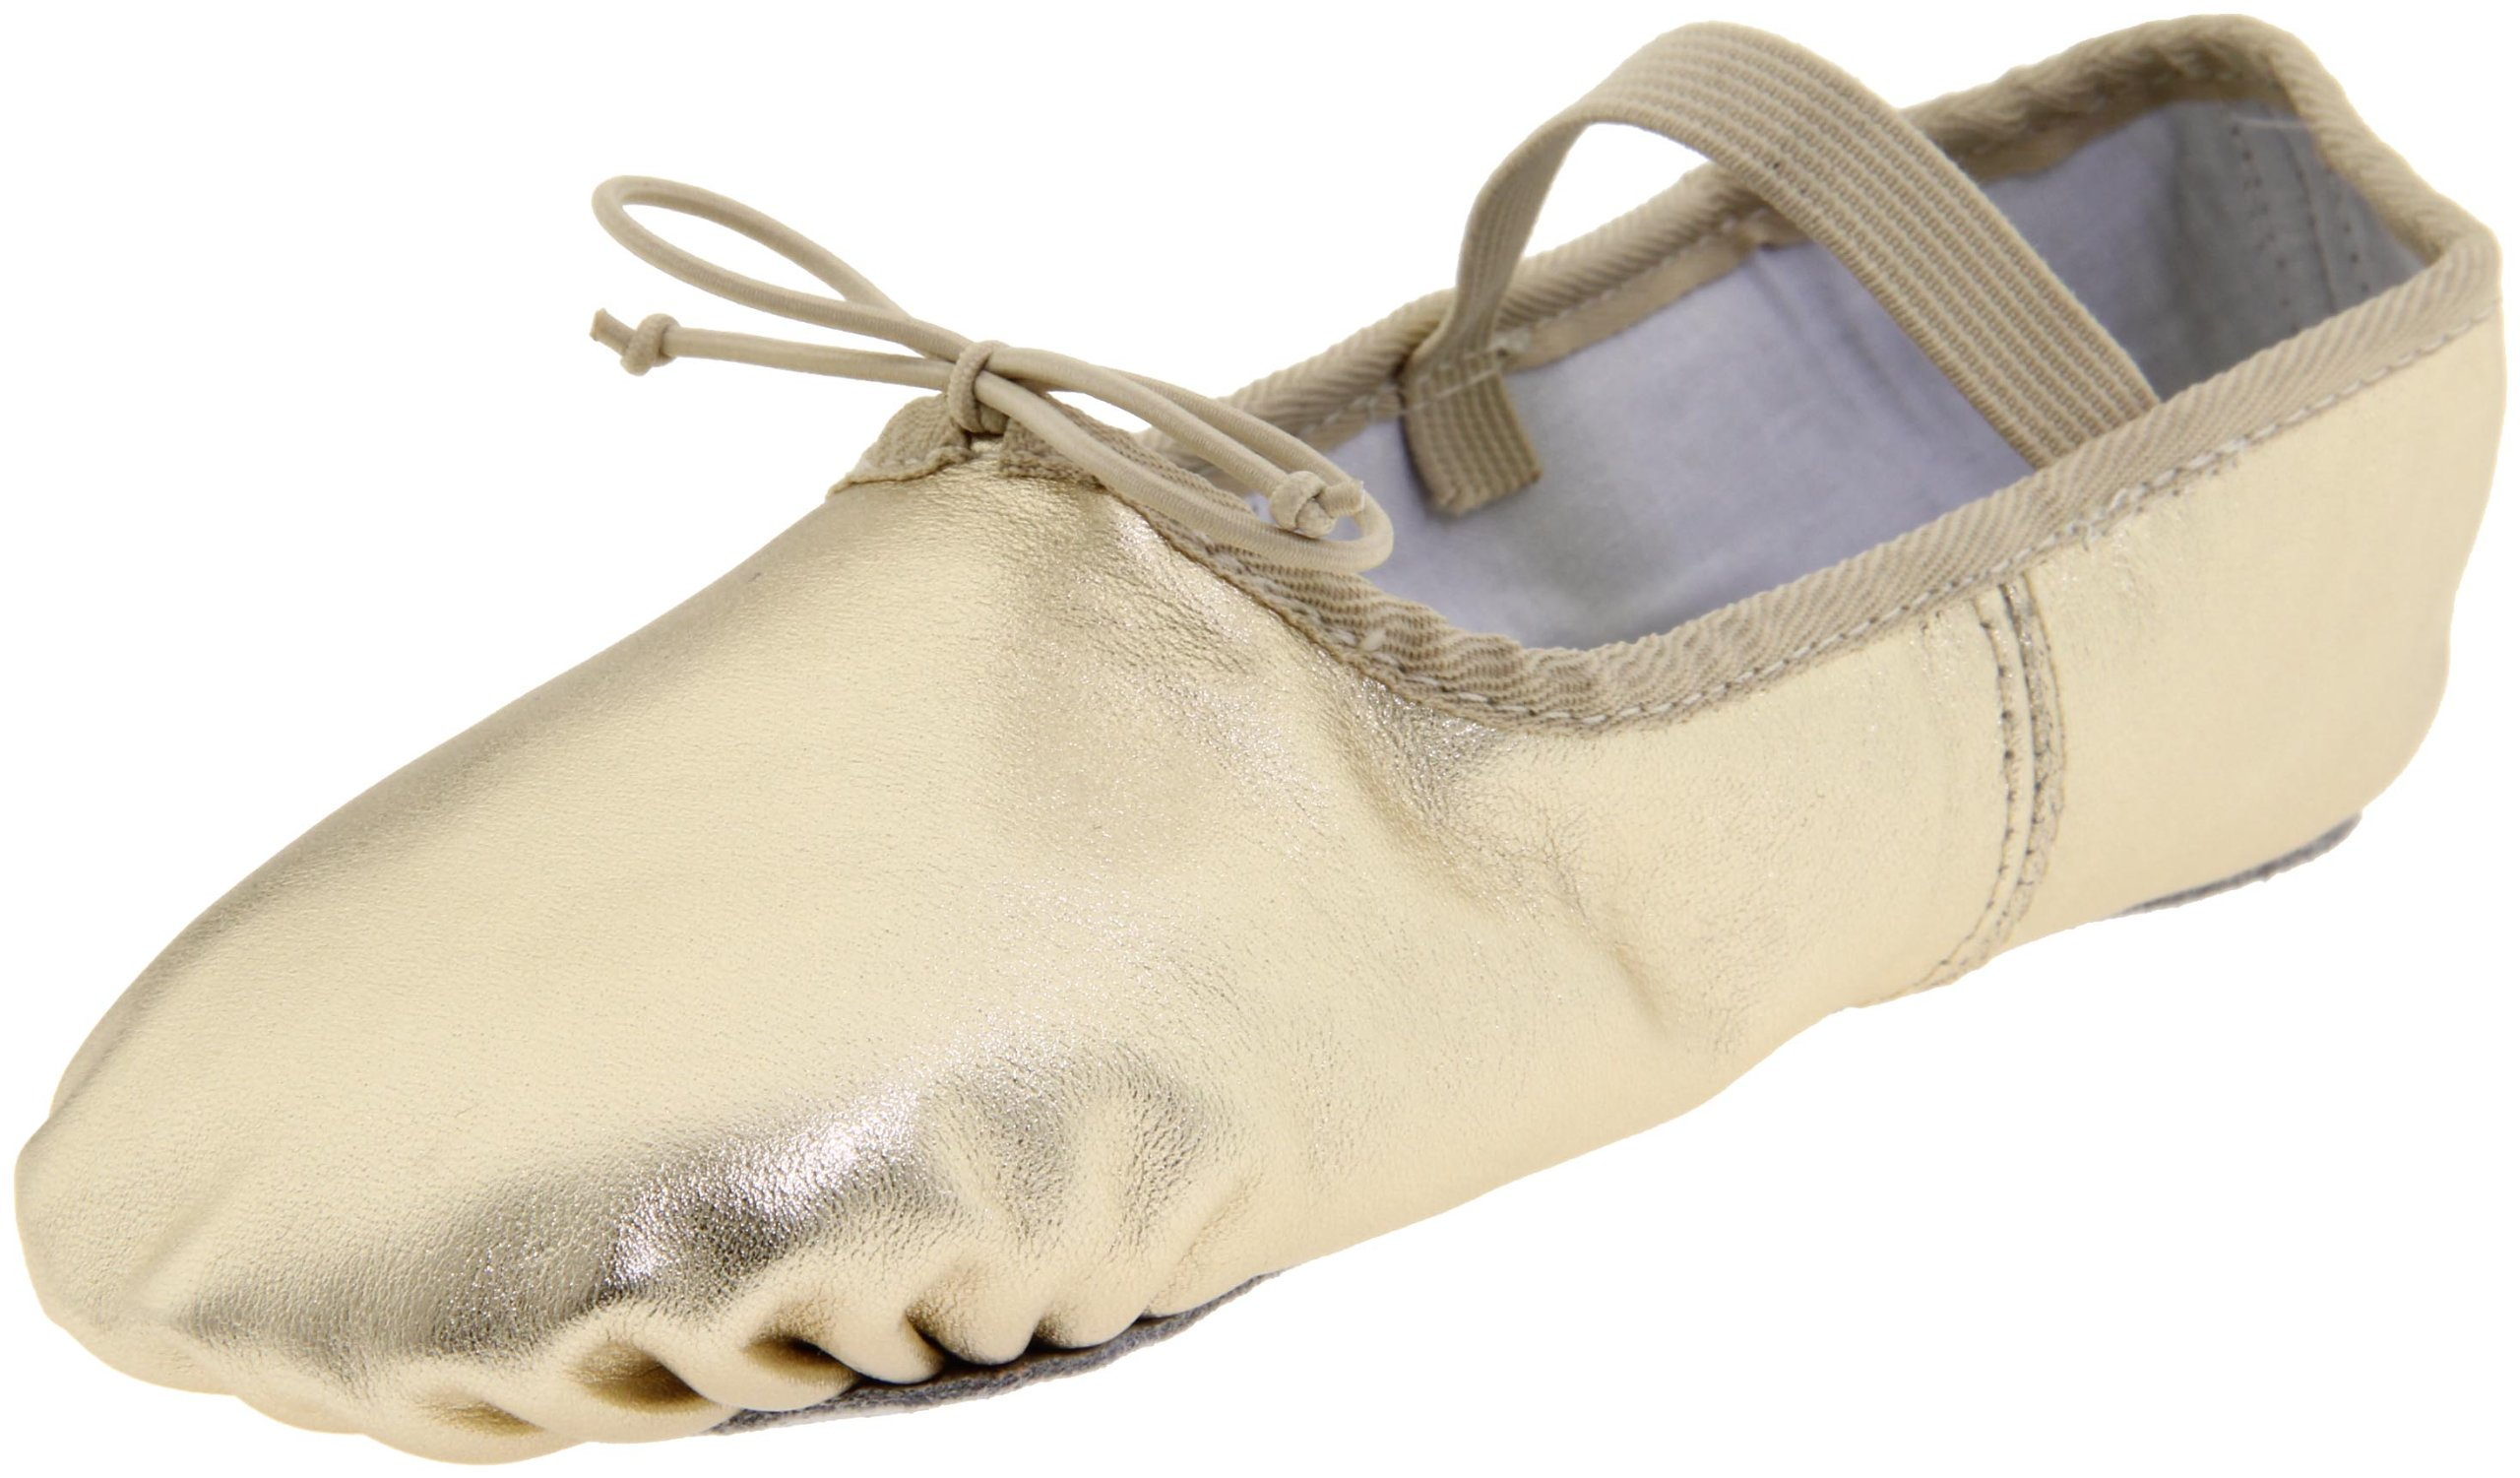 Dance Class Women's B902 Full Sole Metallic Ballet Slipper,Gold,6.5 M US